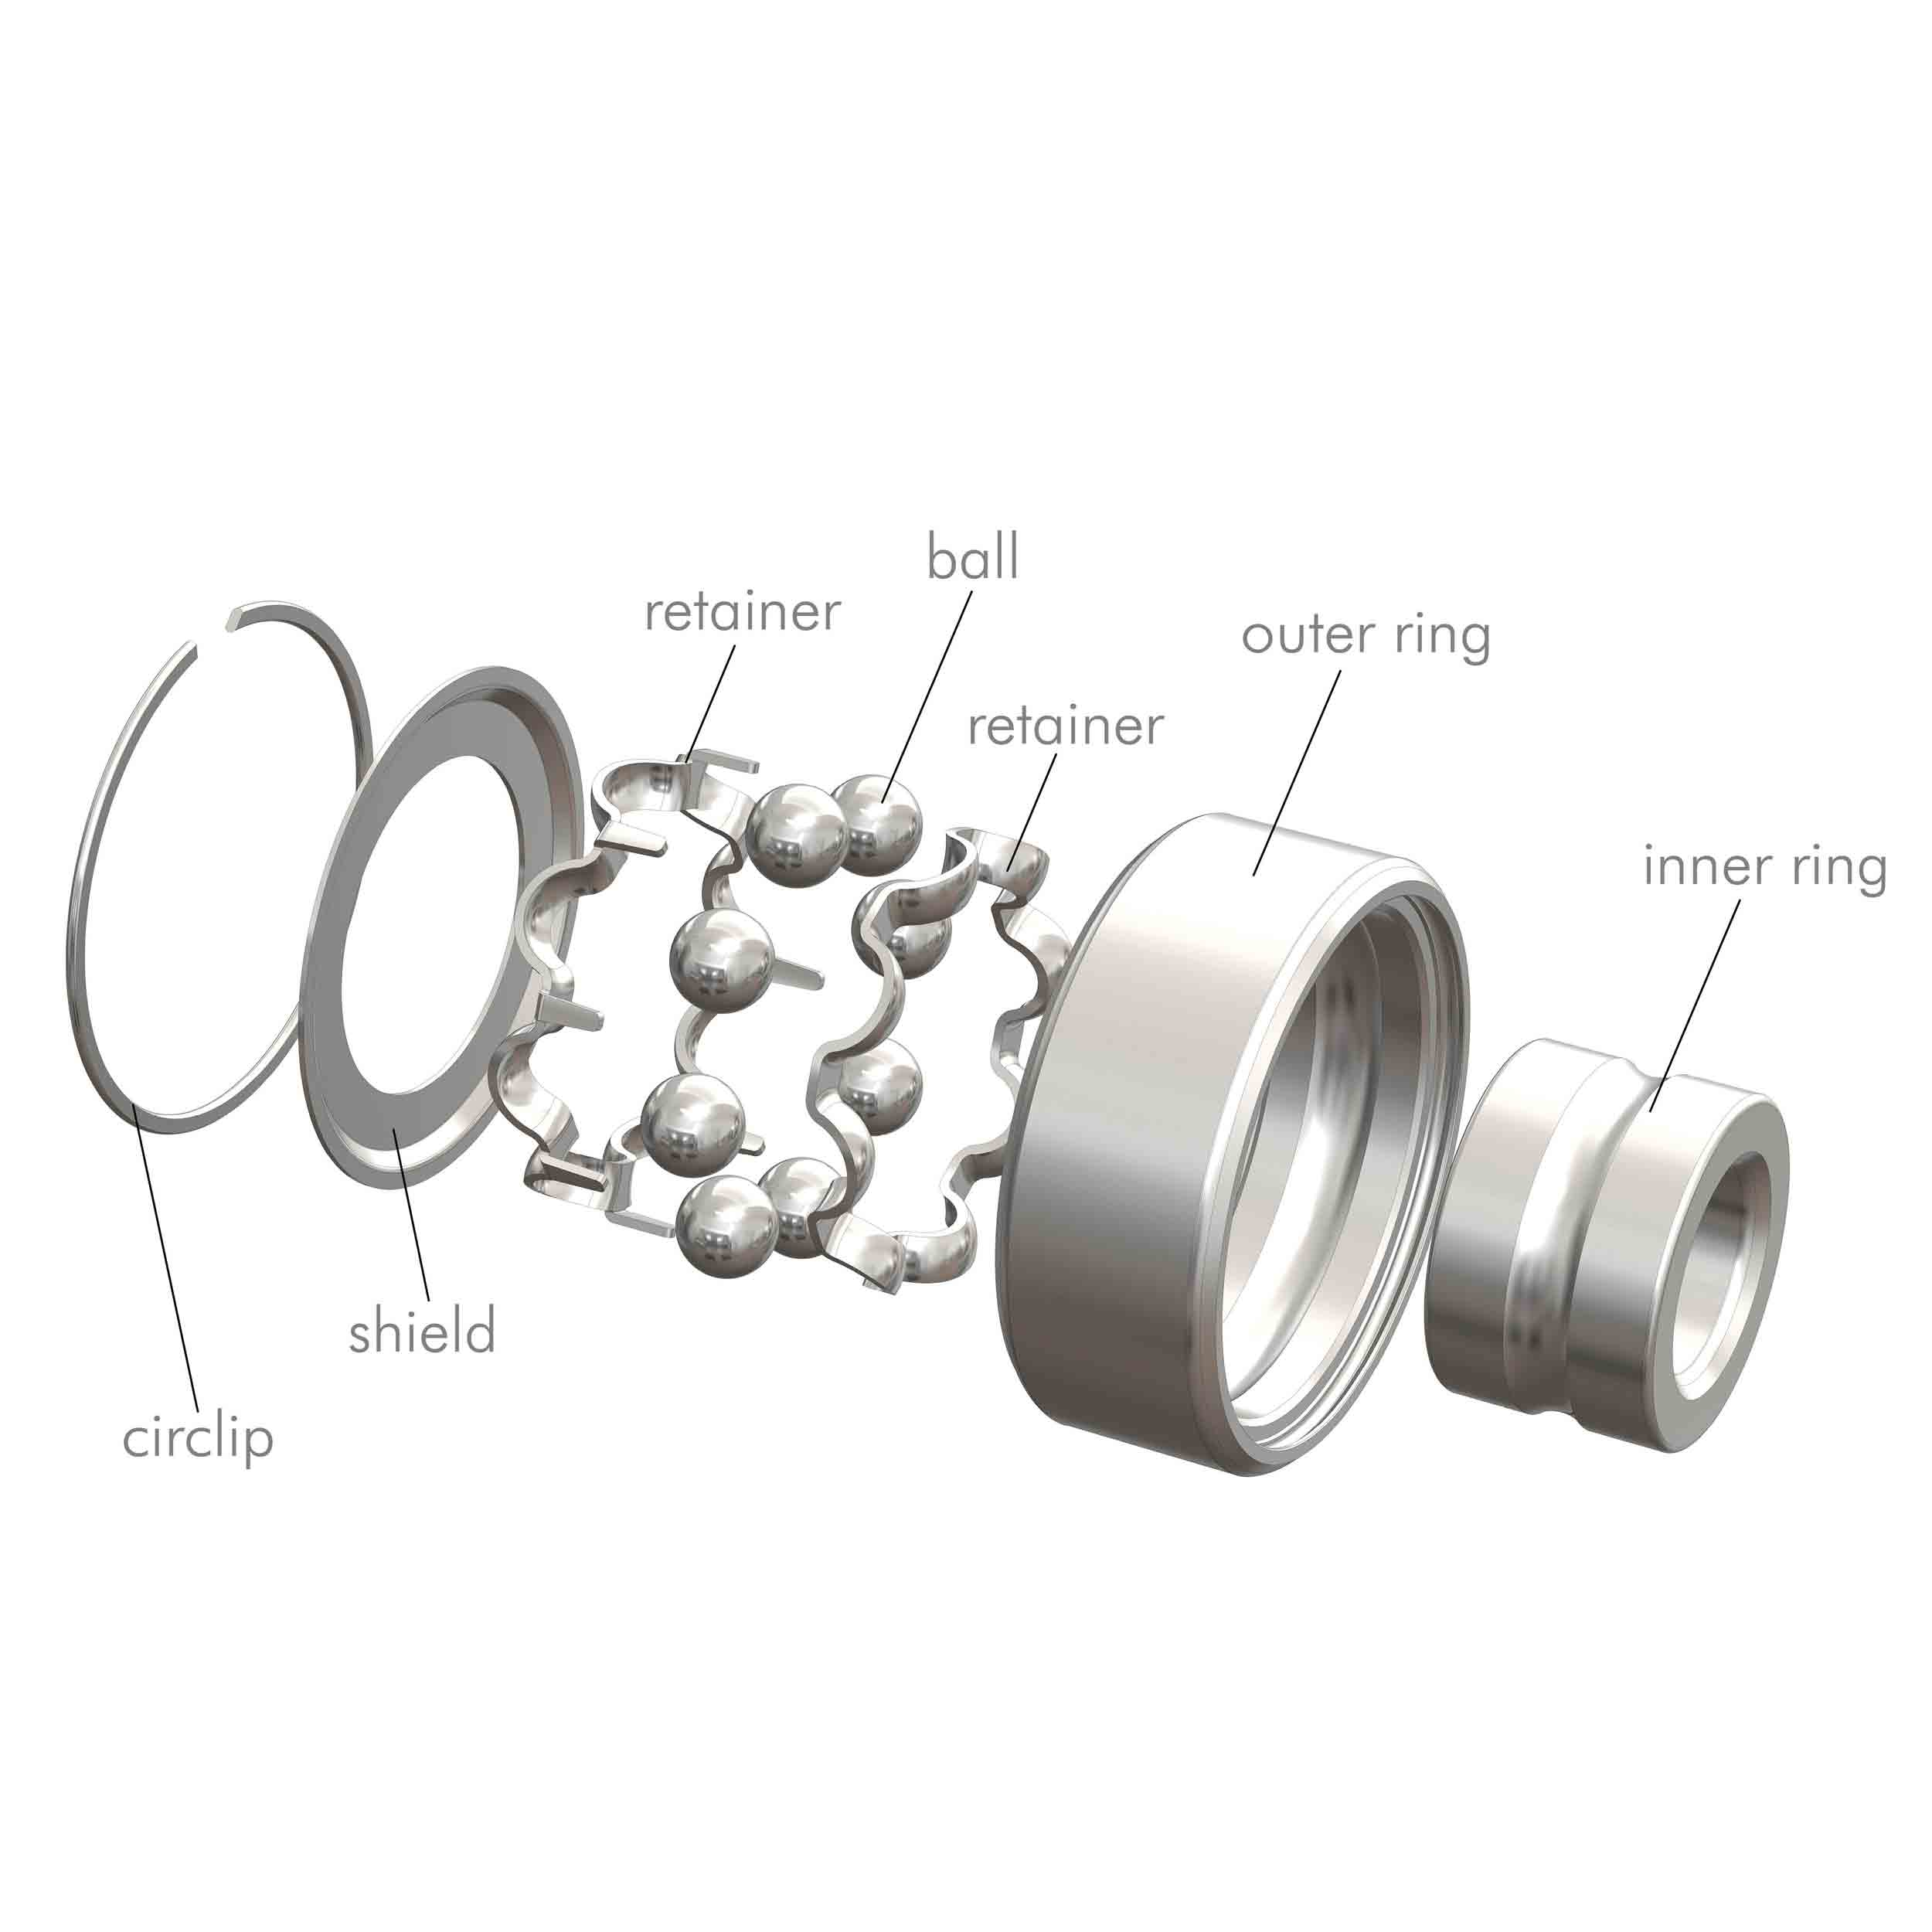 GRW-Ball-Bearings-Shims-Springs-Circlips